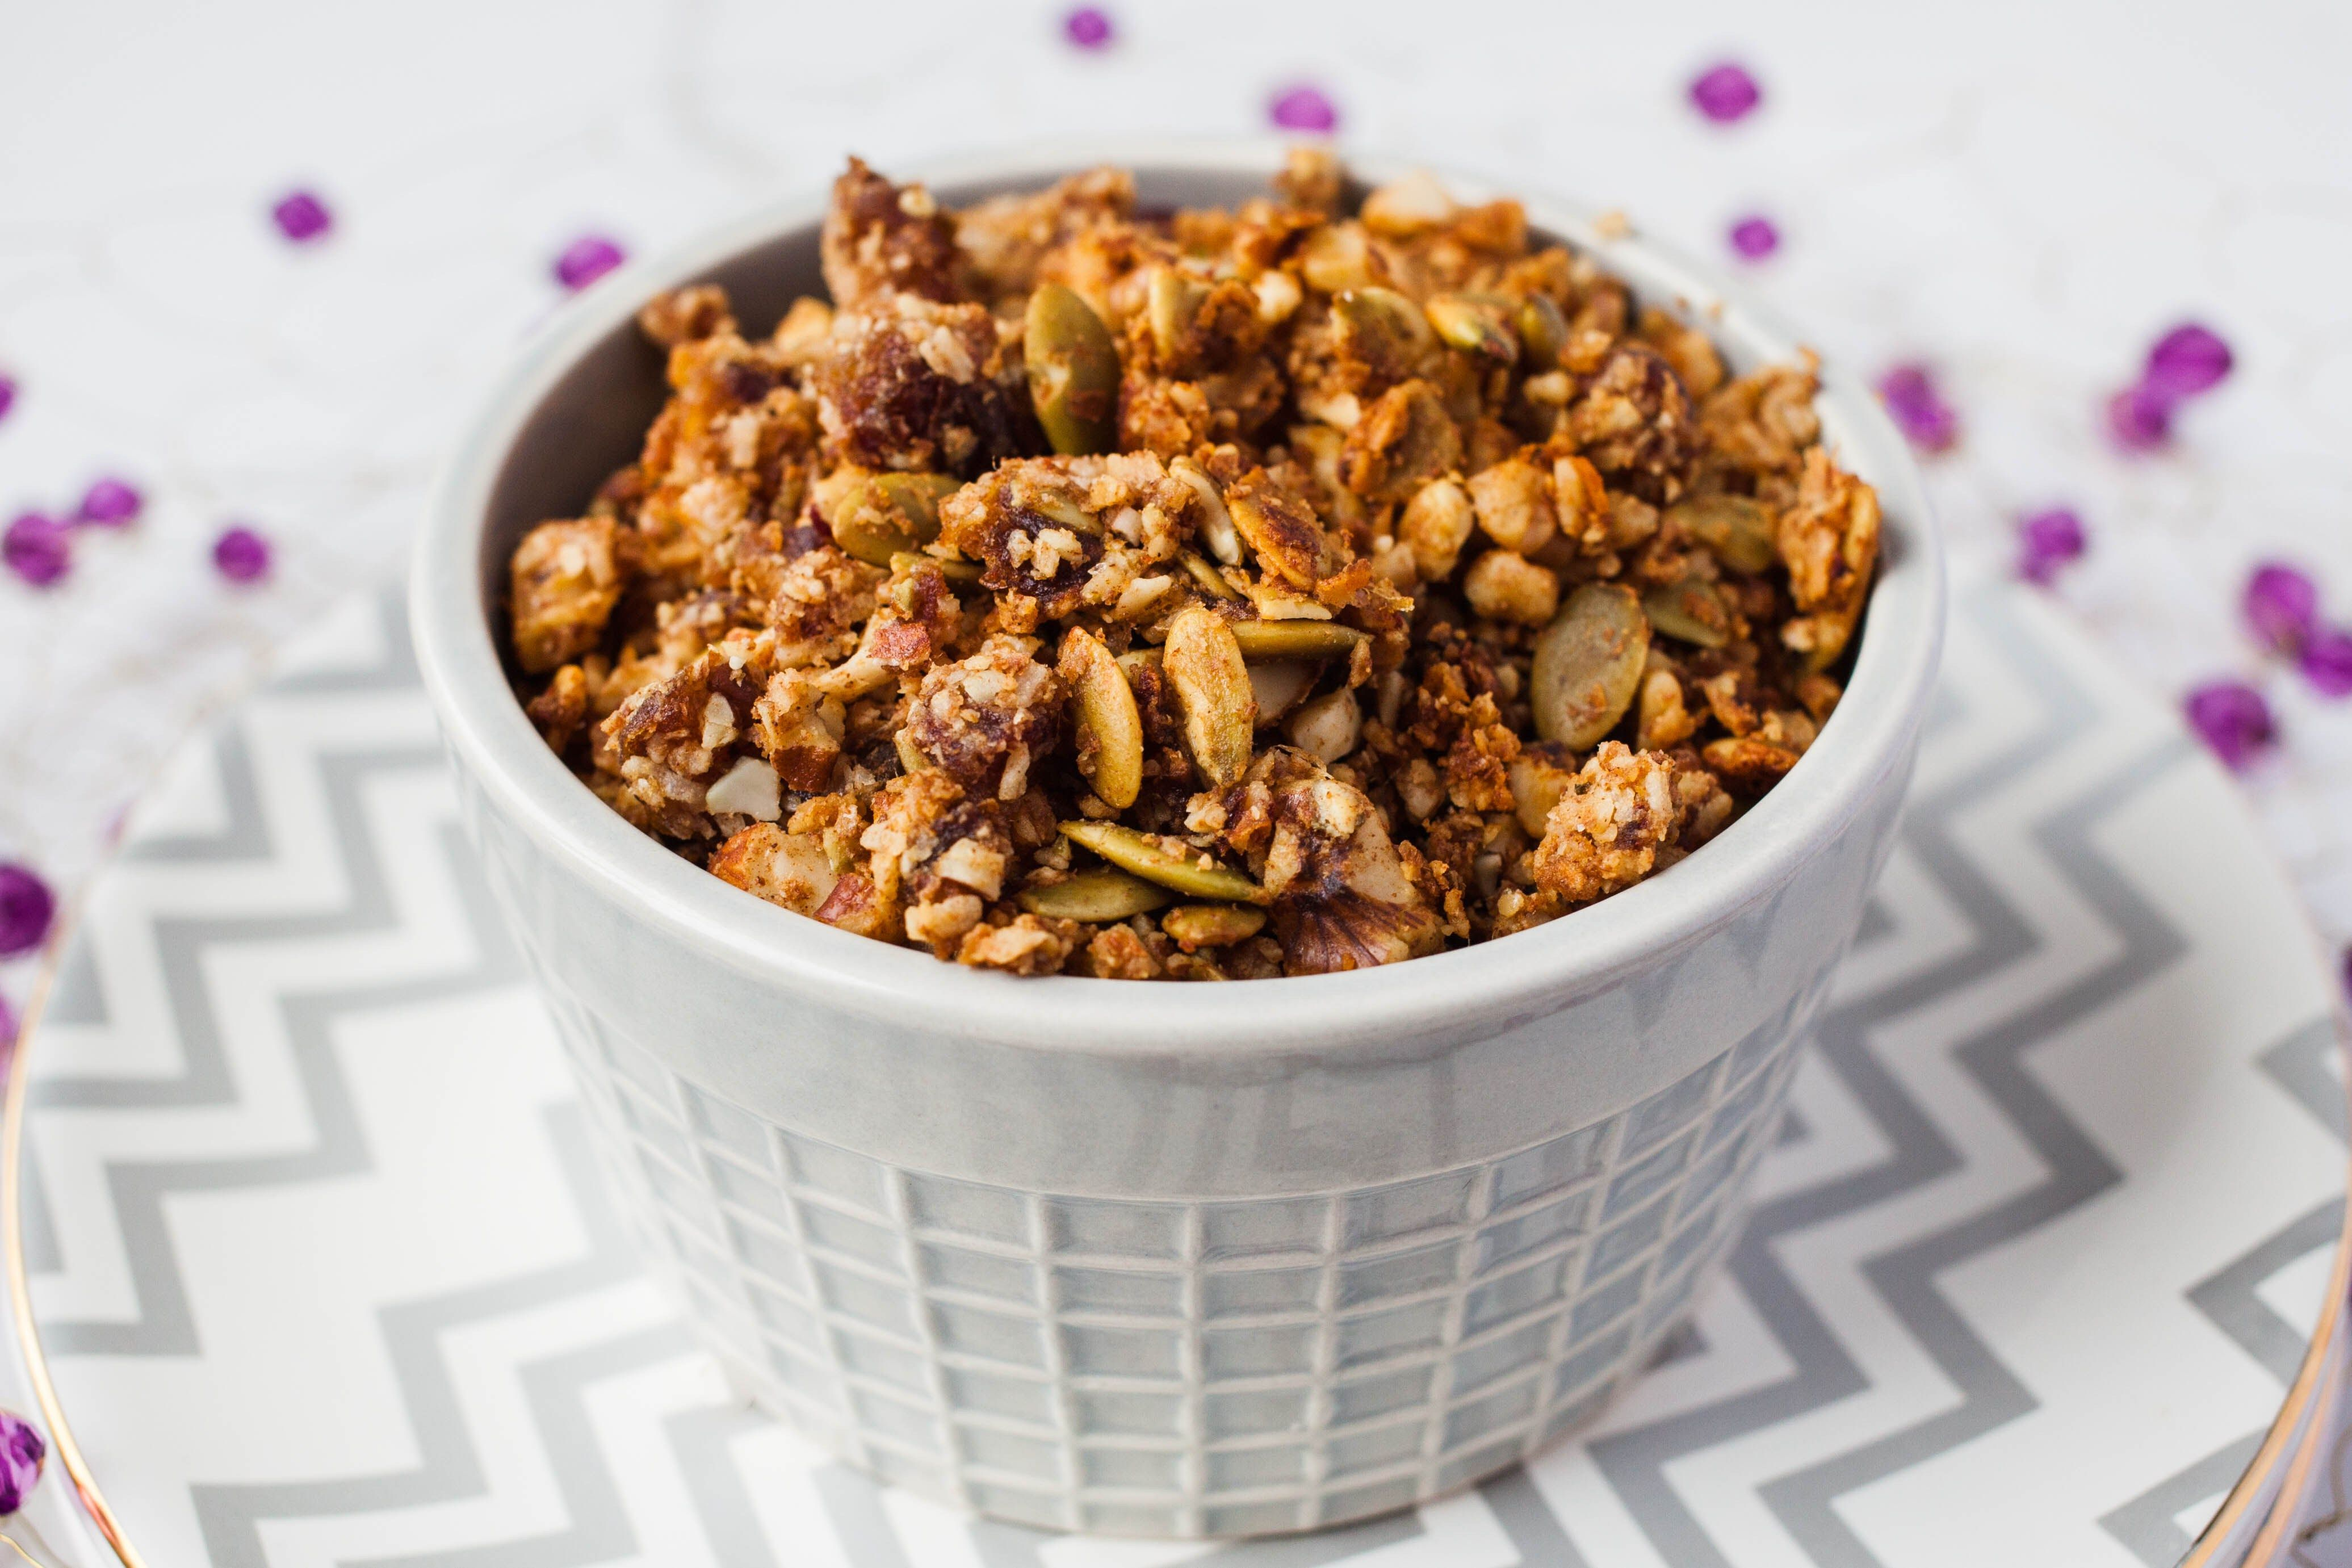 Grainfree granola whole30 friendly powered by